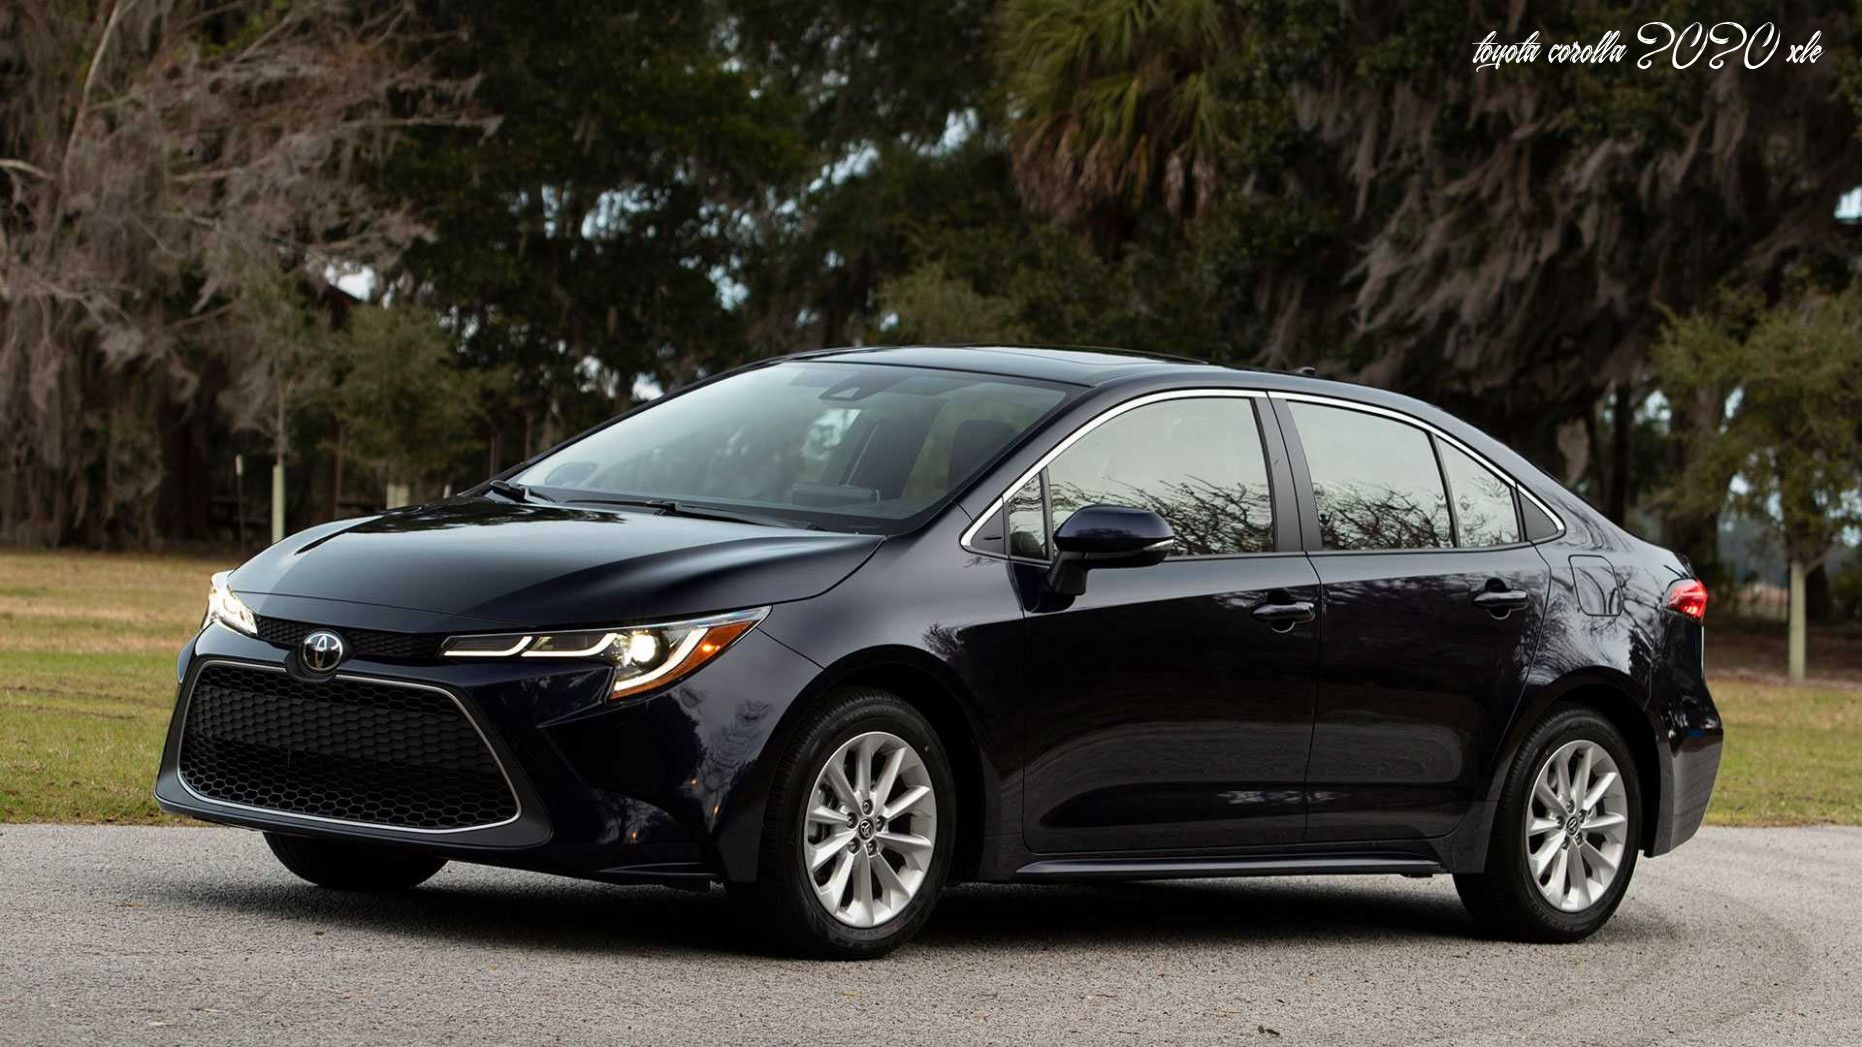 Toyota Corolla 2020 Xle Speed Test In 2020 Toyota Corolla Le Toyota Corolla Toyota Corolla Hatchback